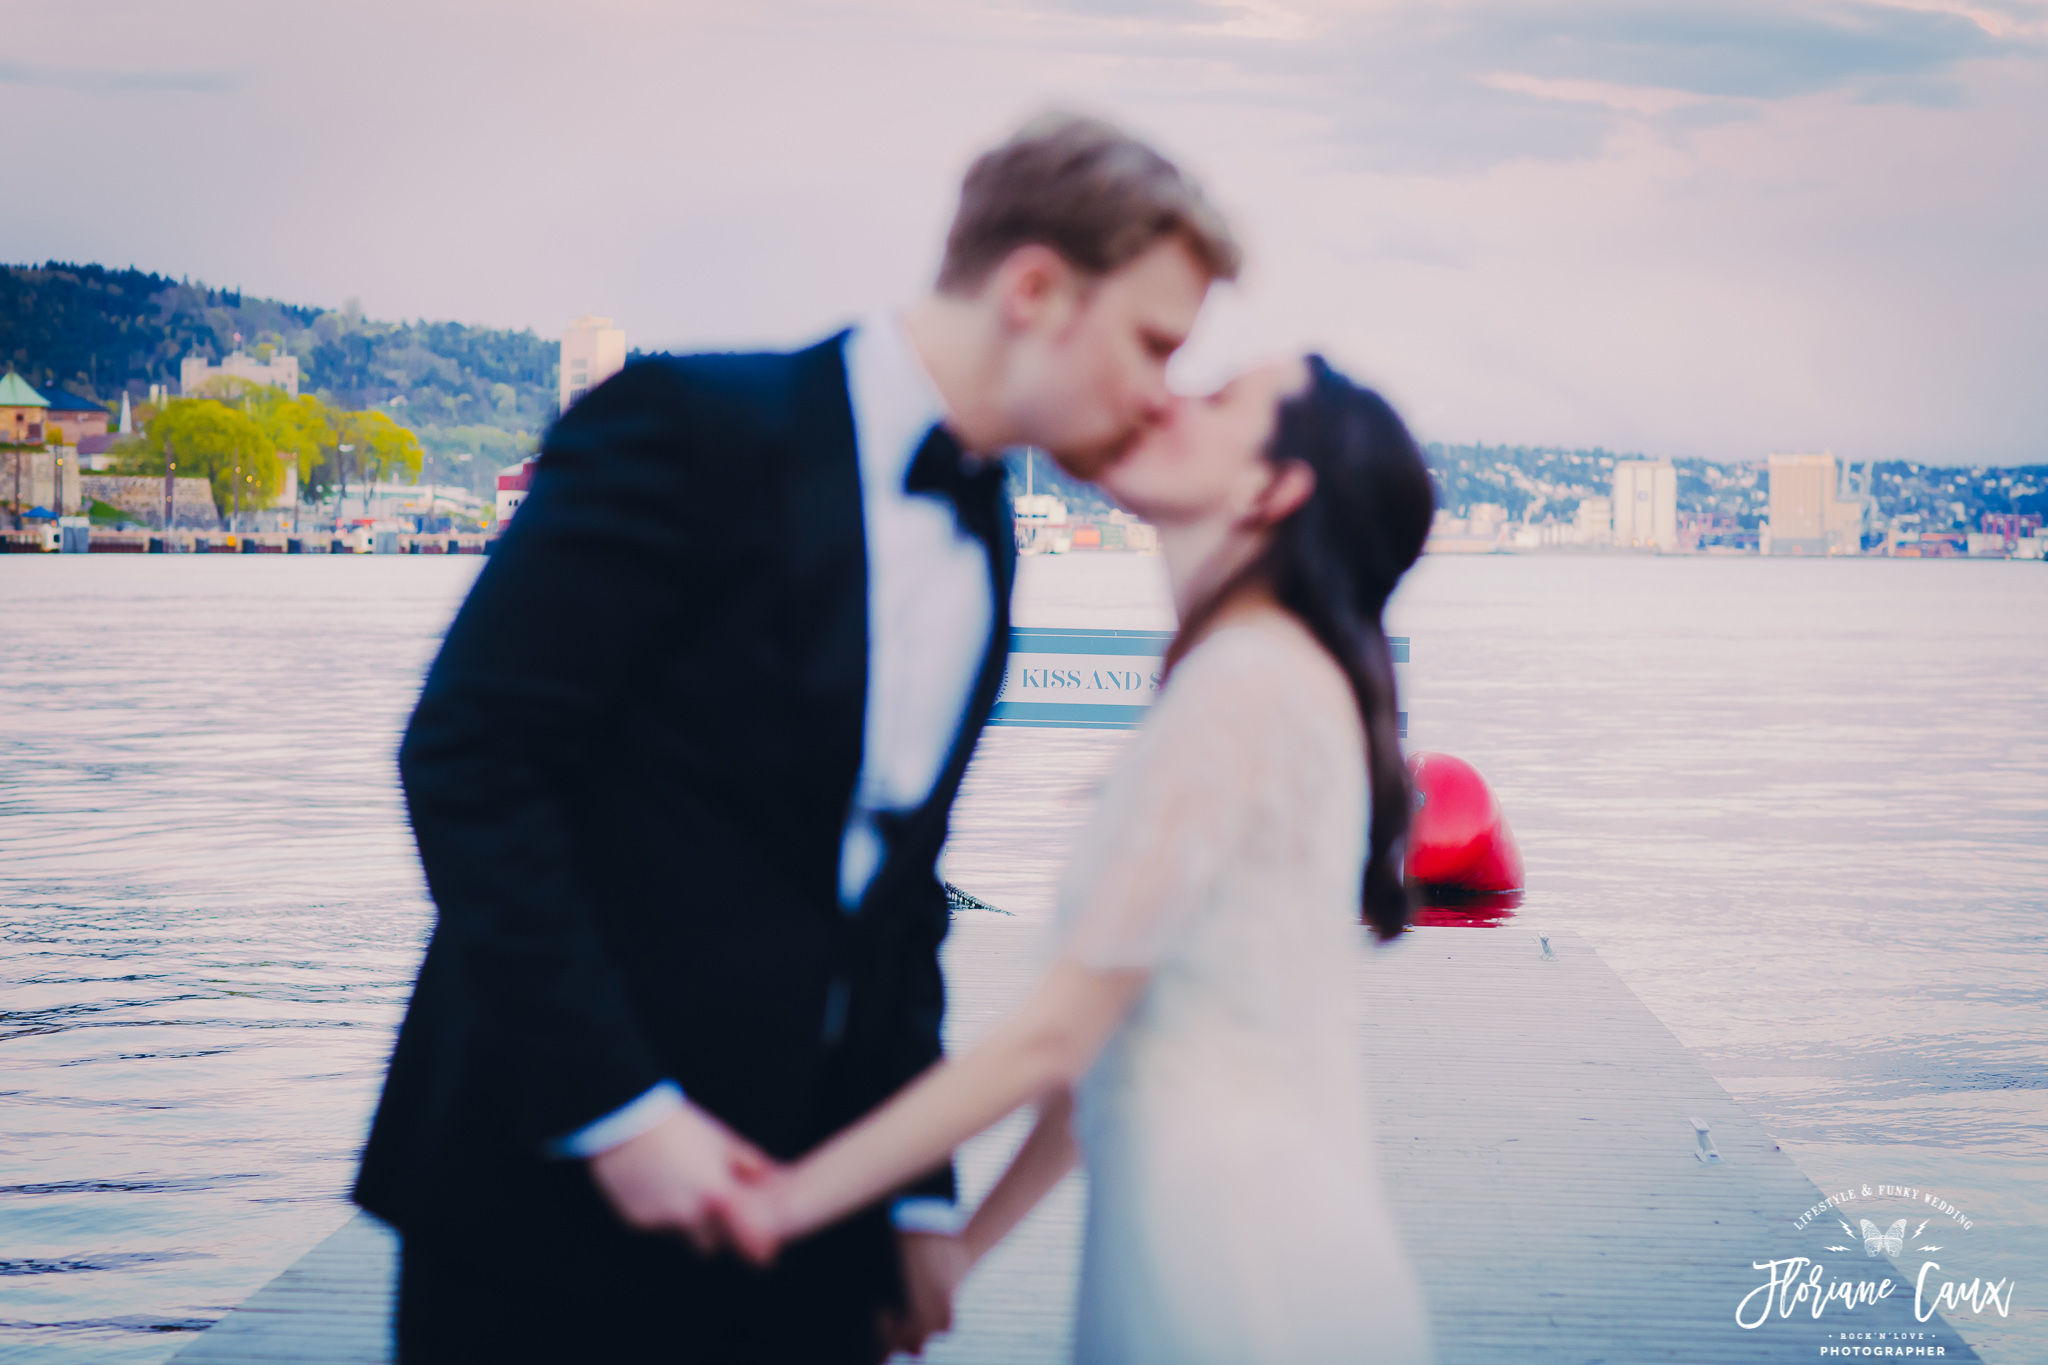 destination-wedding-photographer-oslo-norway-floriane-caux-54